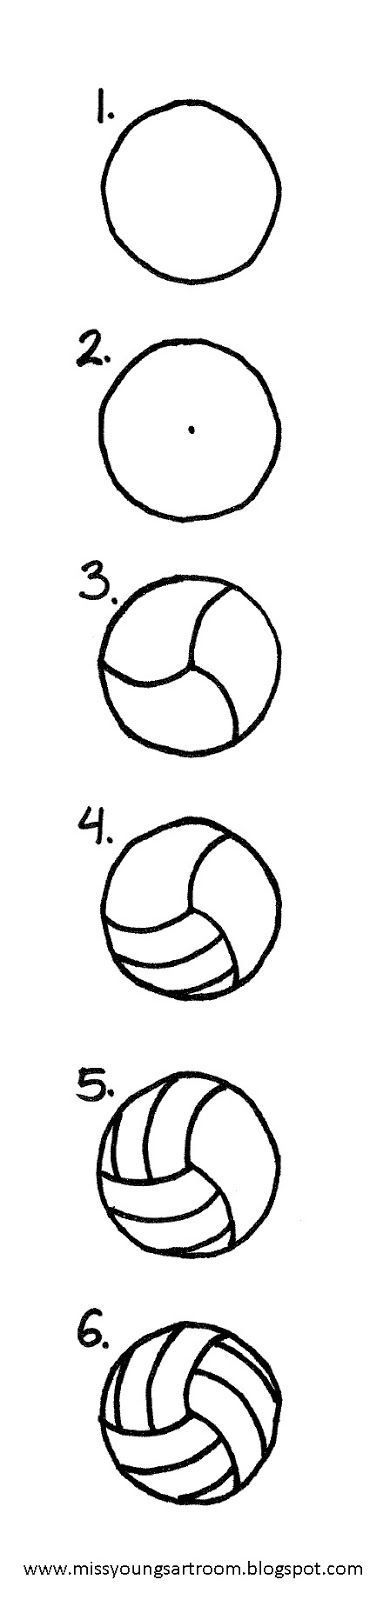 Cool Volleyball designs on shirts and other gift ideas by Mudge . Volleyball design features Welcome to the Block Party!